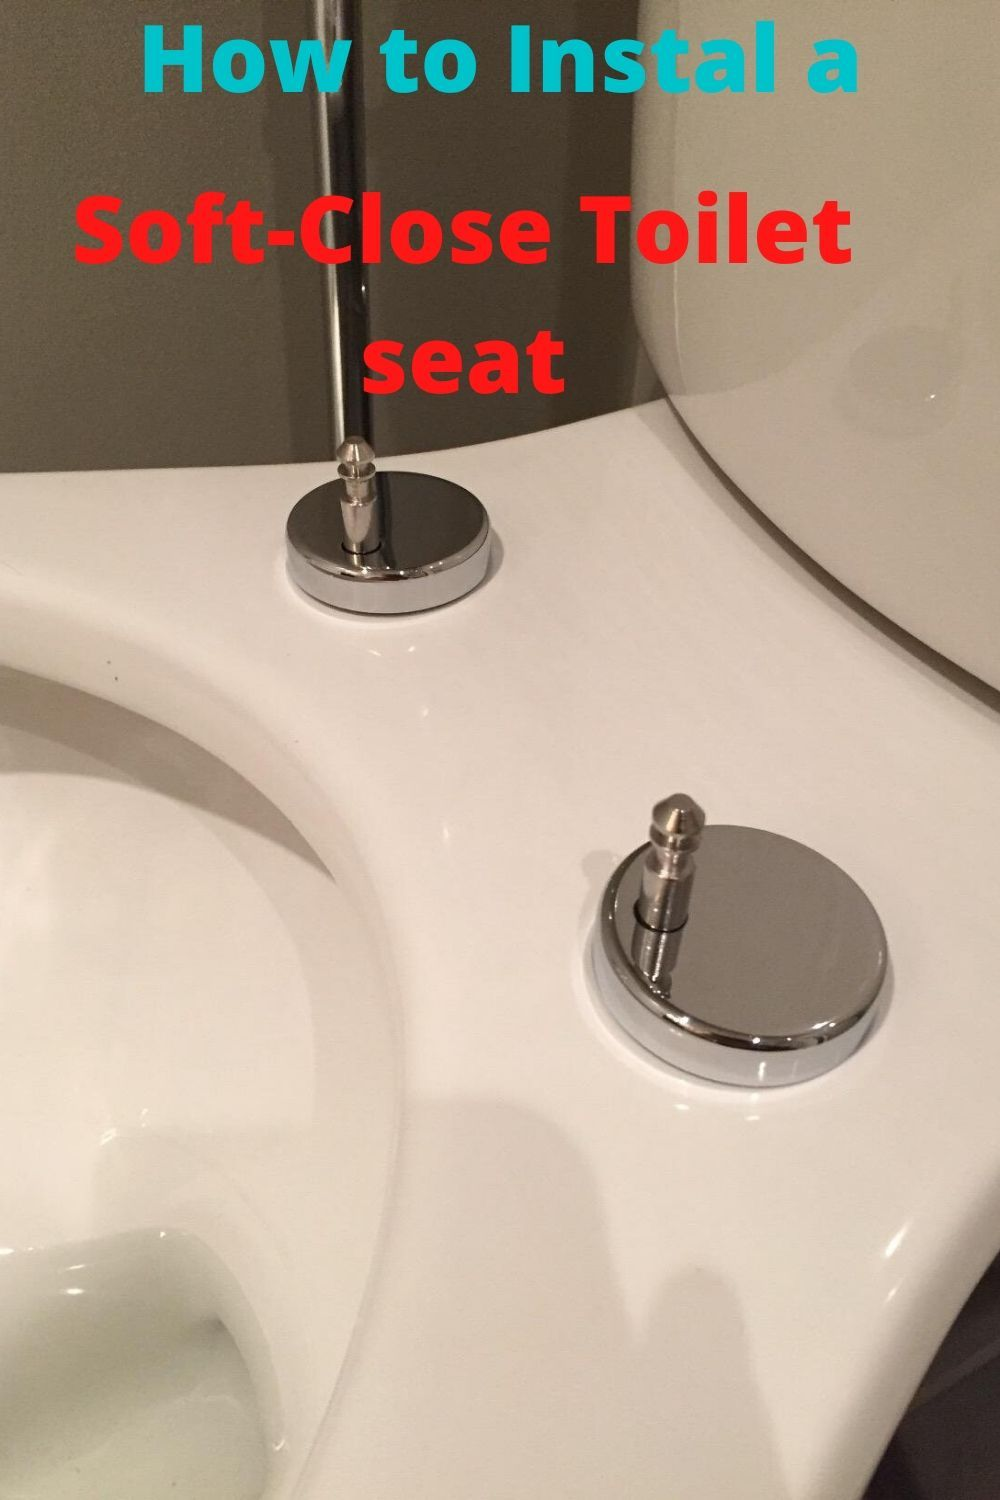 How To Install A Soft Close Toilet Seat In 2020 Toilet Seat Seating Installation